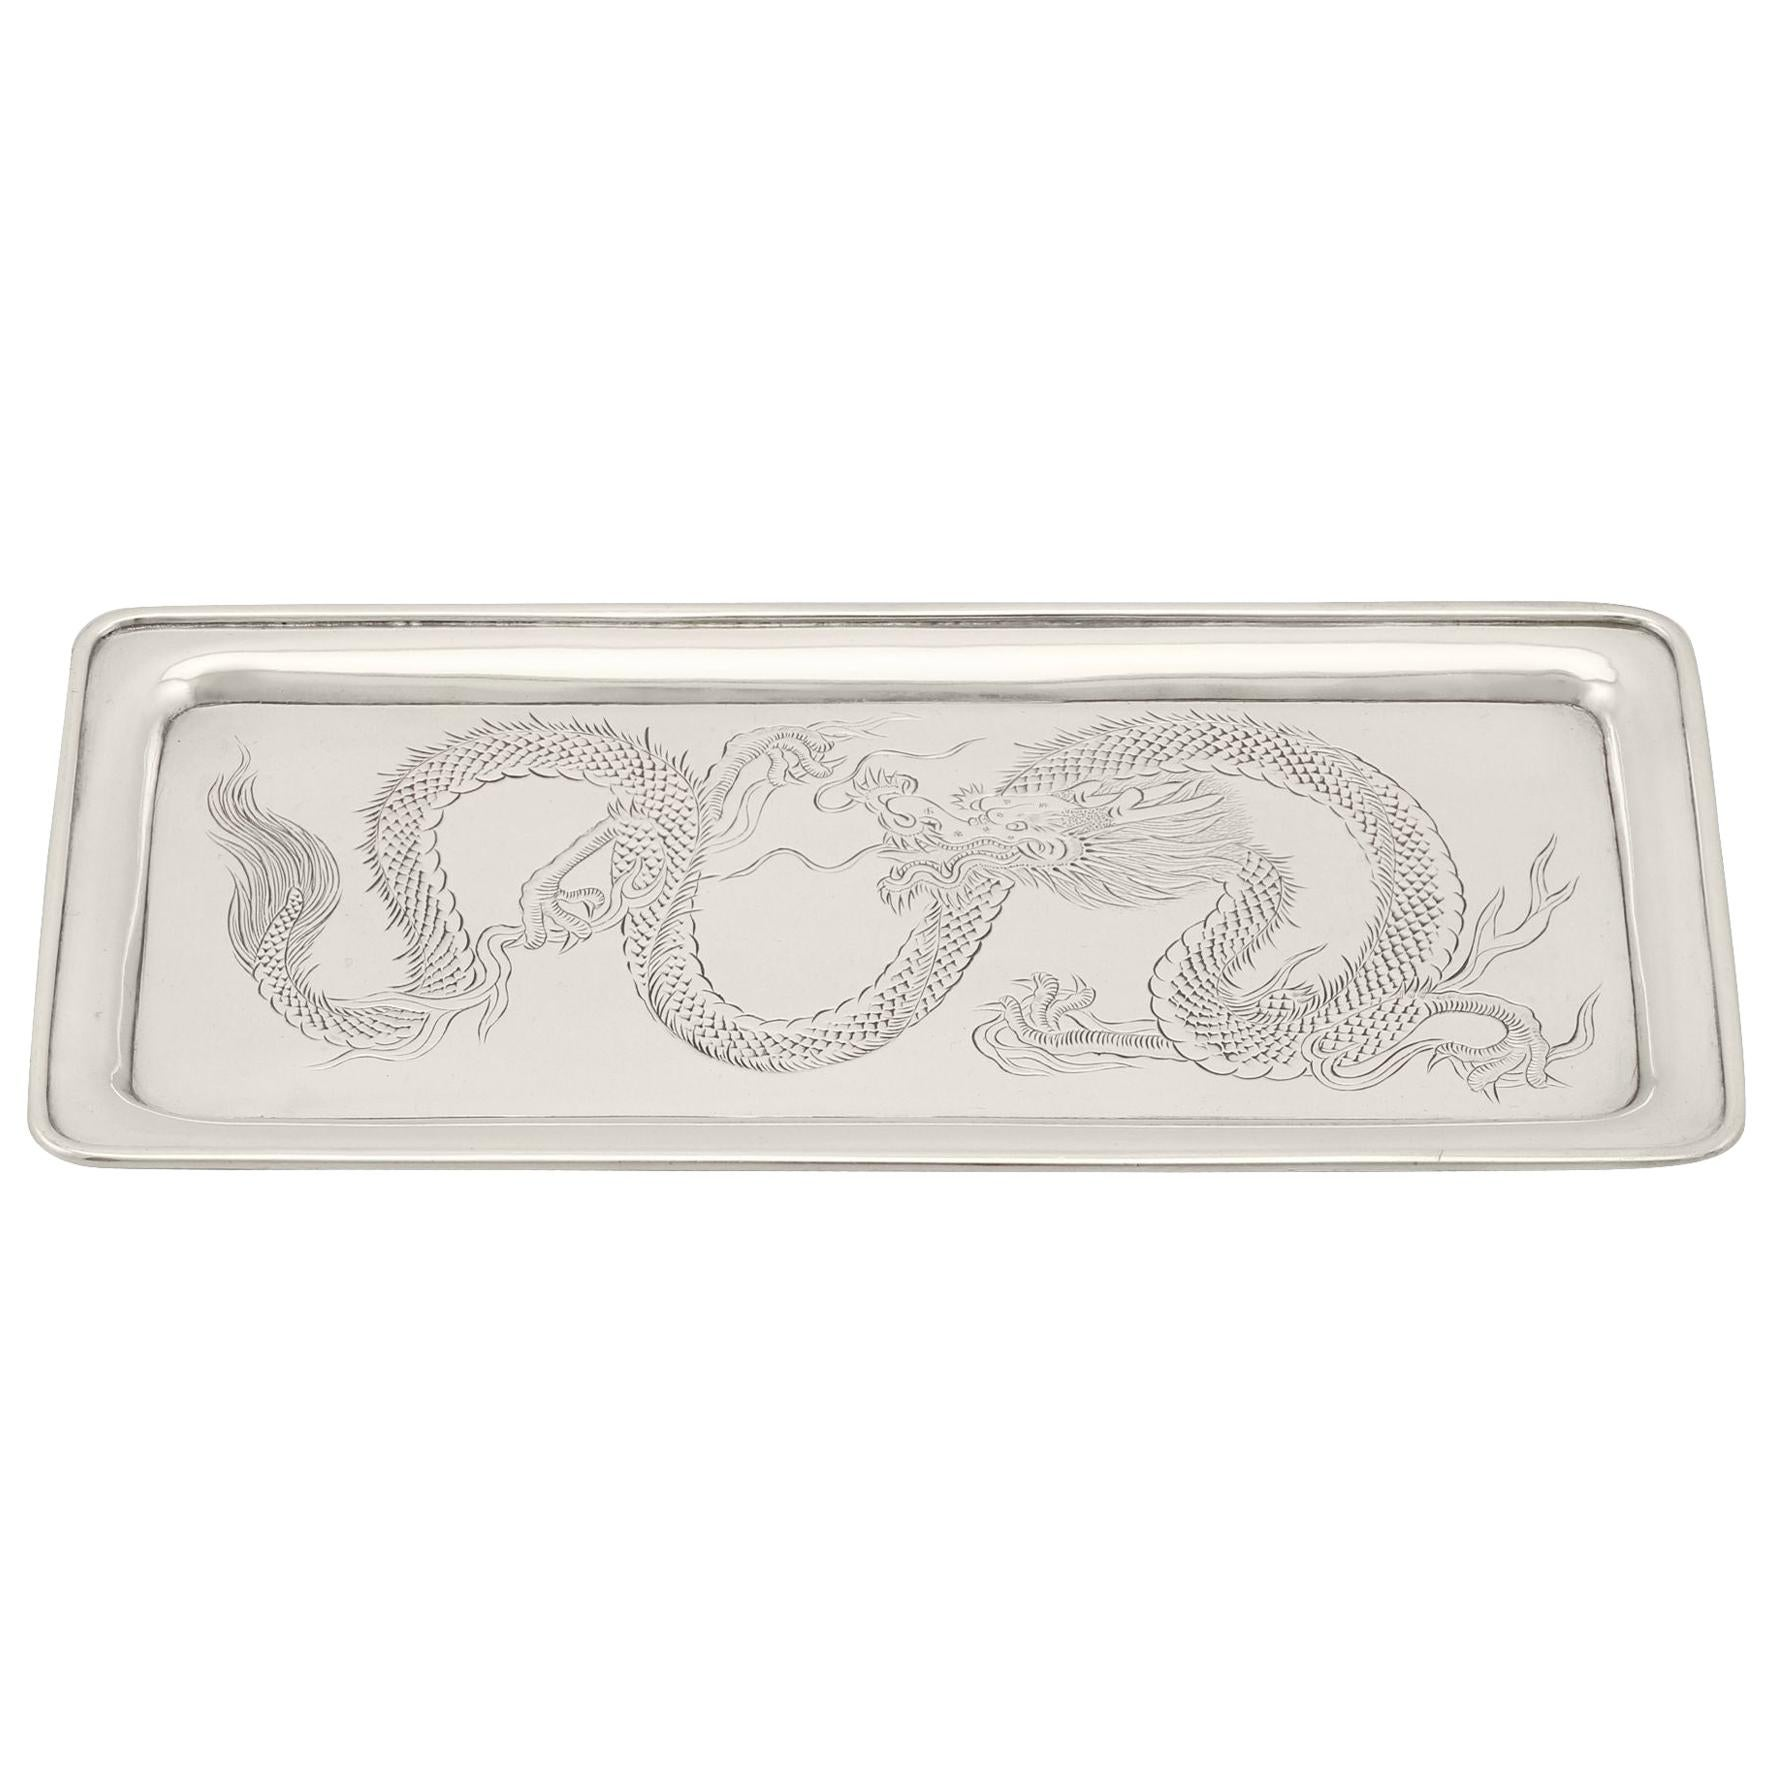 Antique Chinese Export Silver Tray, circa 1890